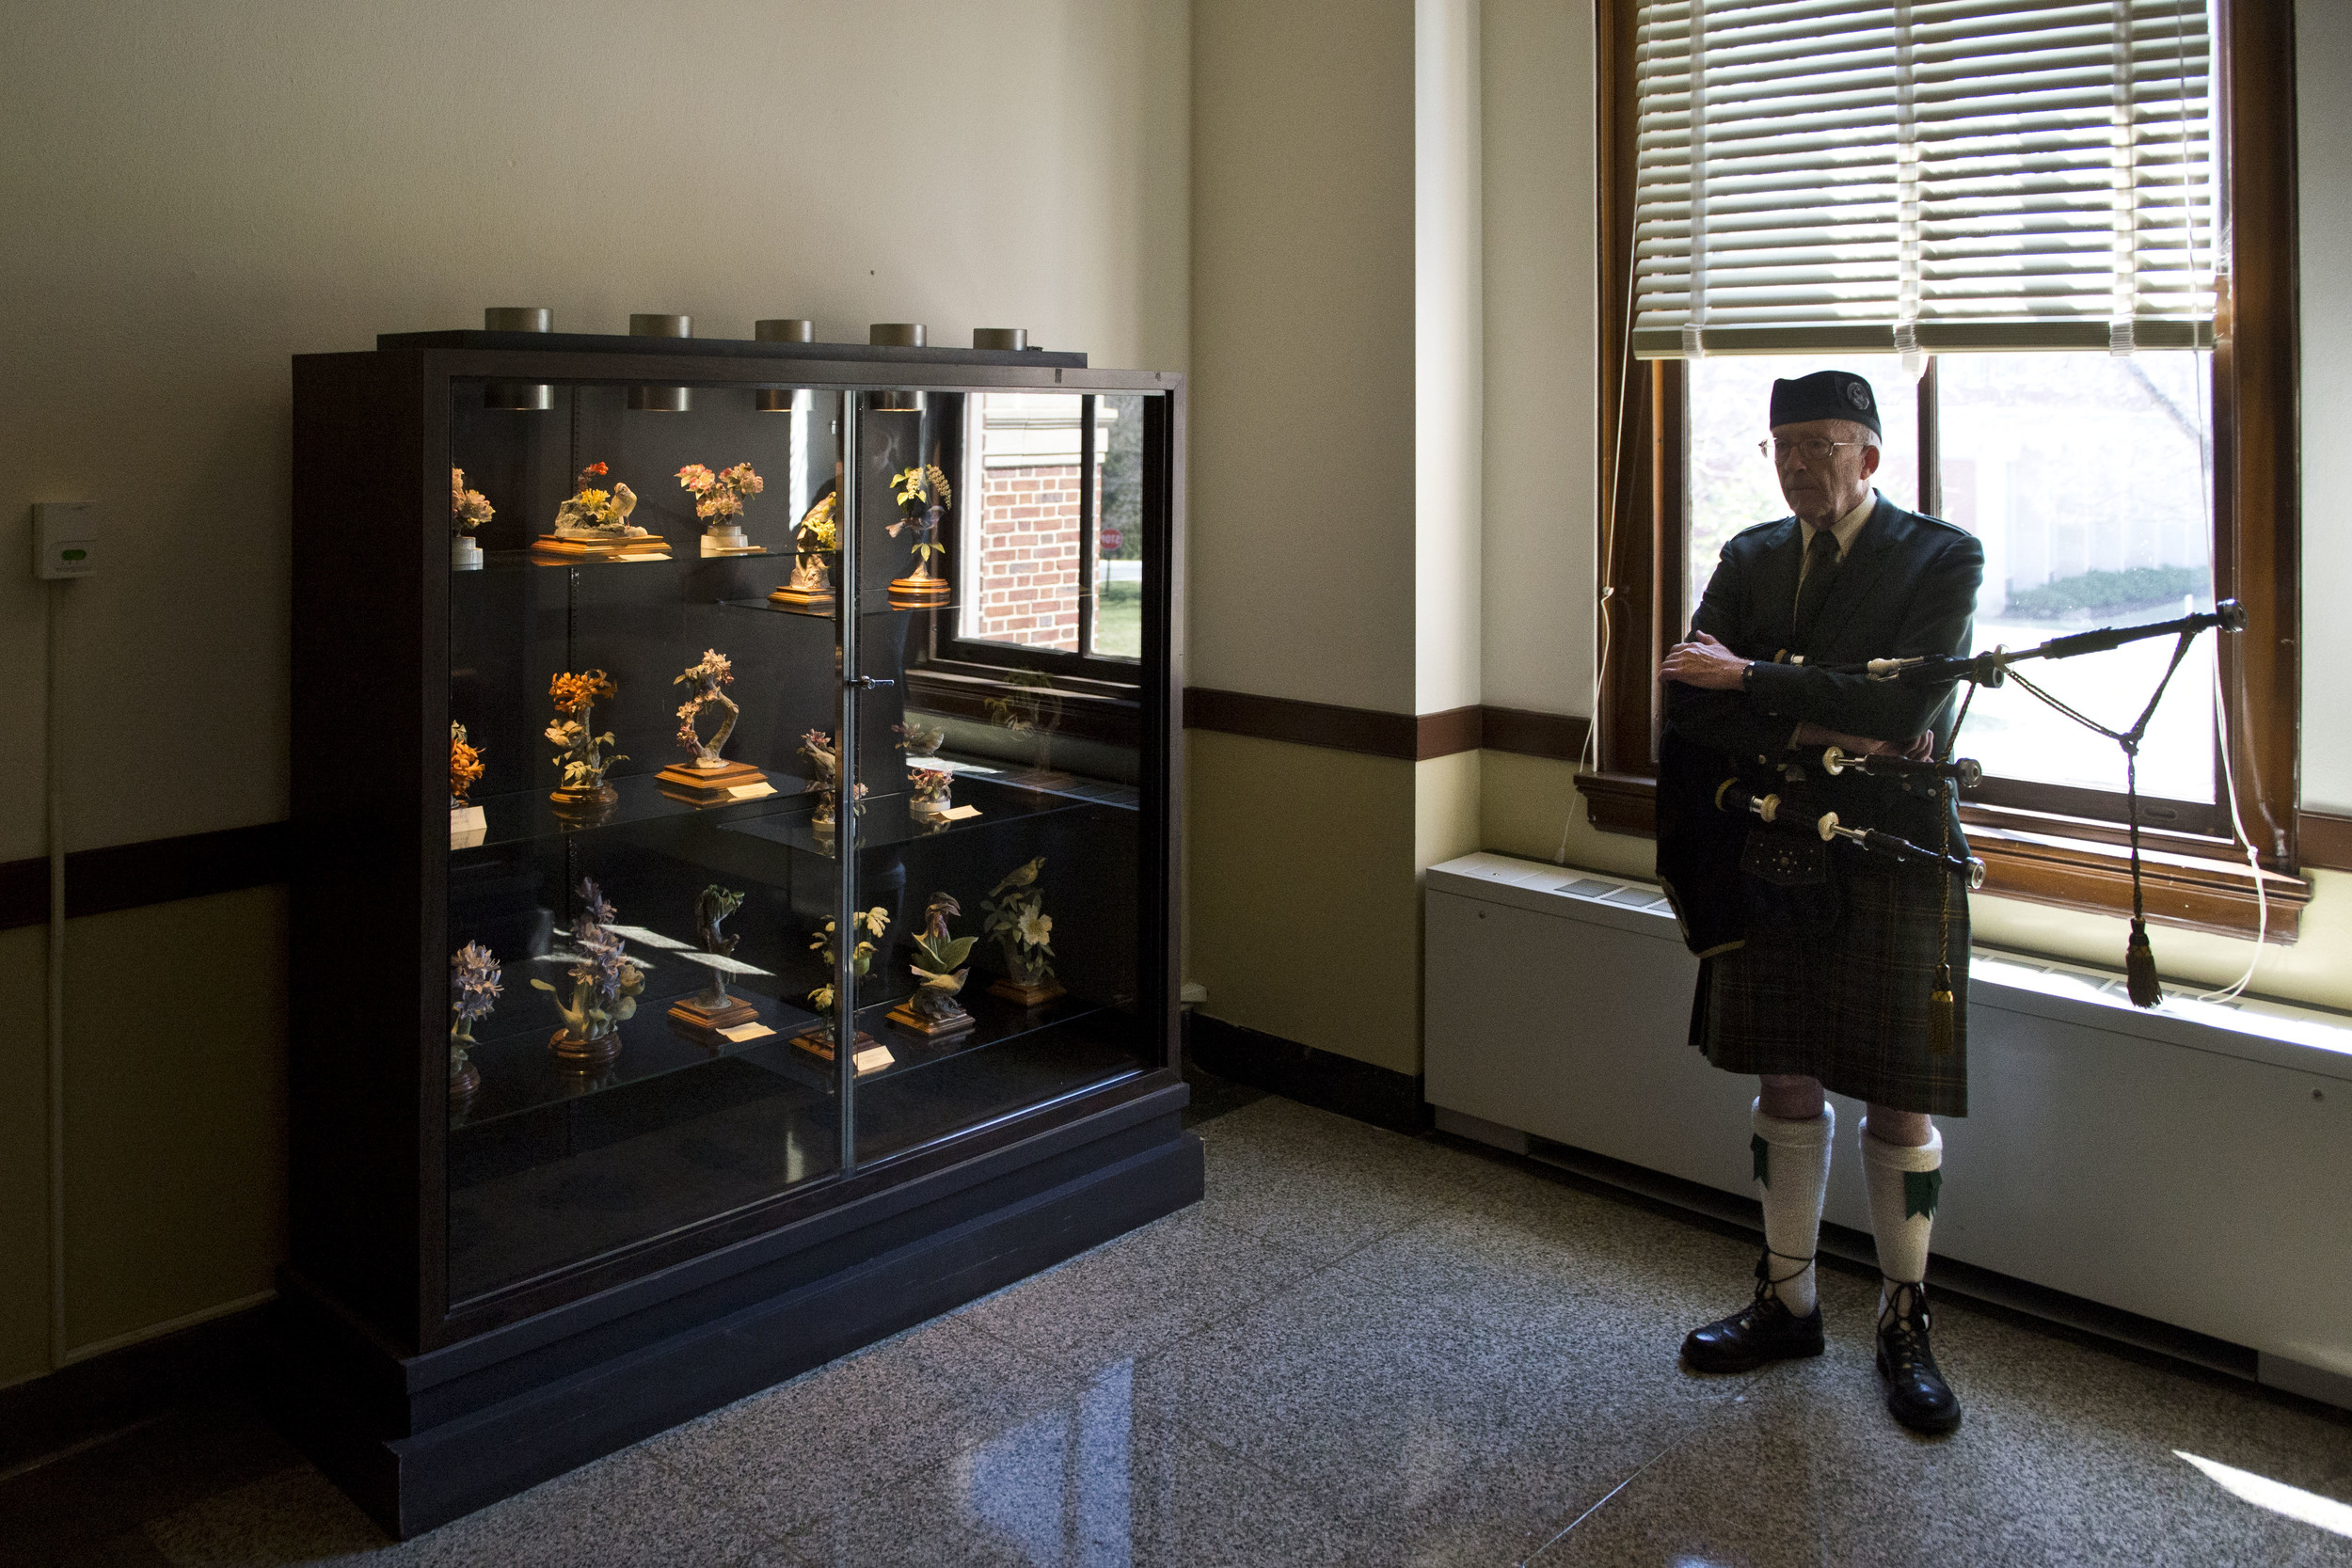 A bagpiper waits to play in the procession at the Notre Dame of Maryland University commencement ceremony.